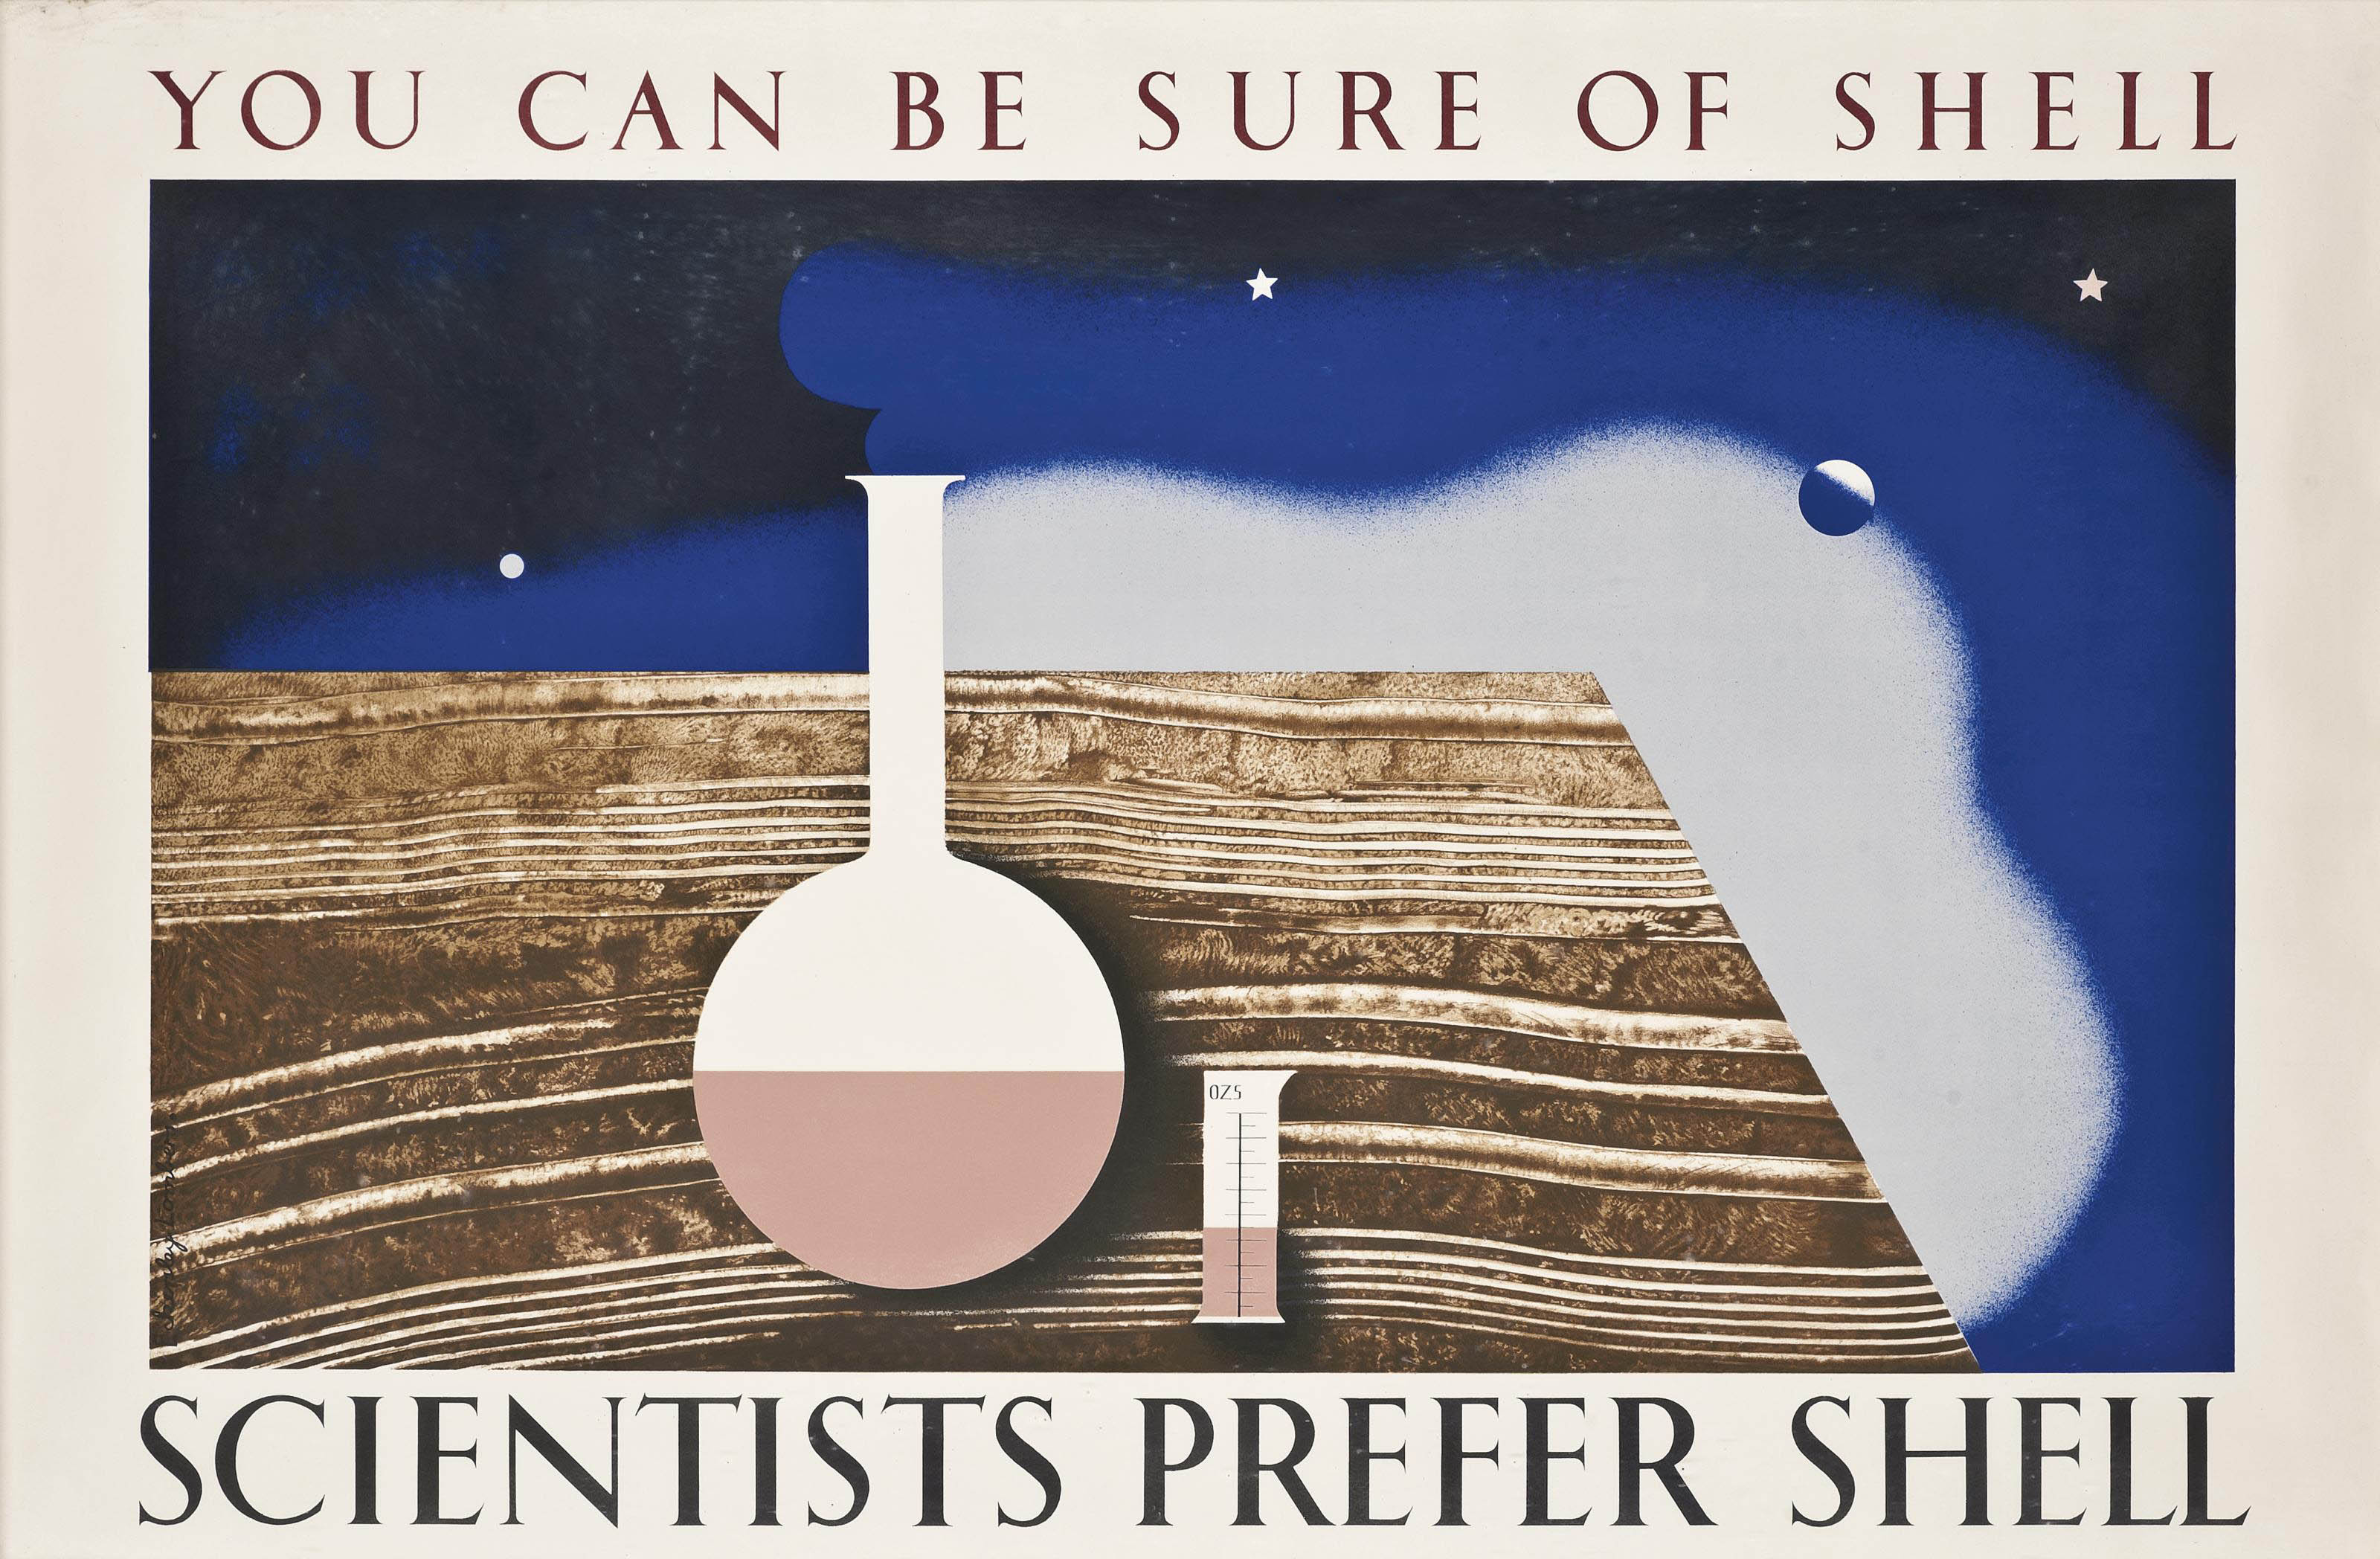 SCIENTISTS PREFER SHELL